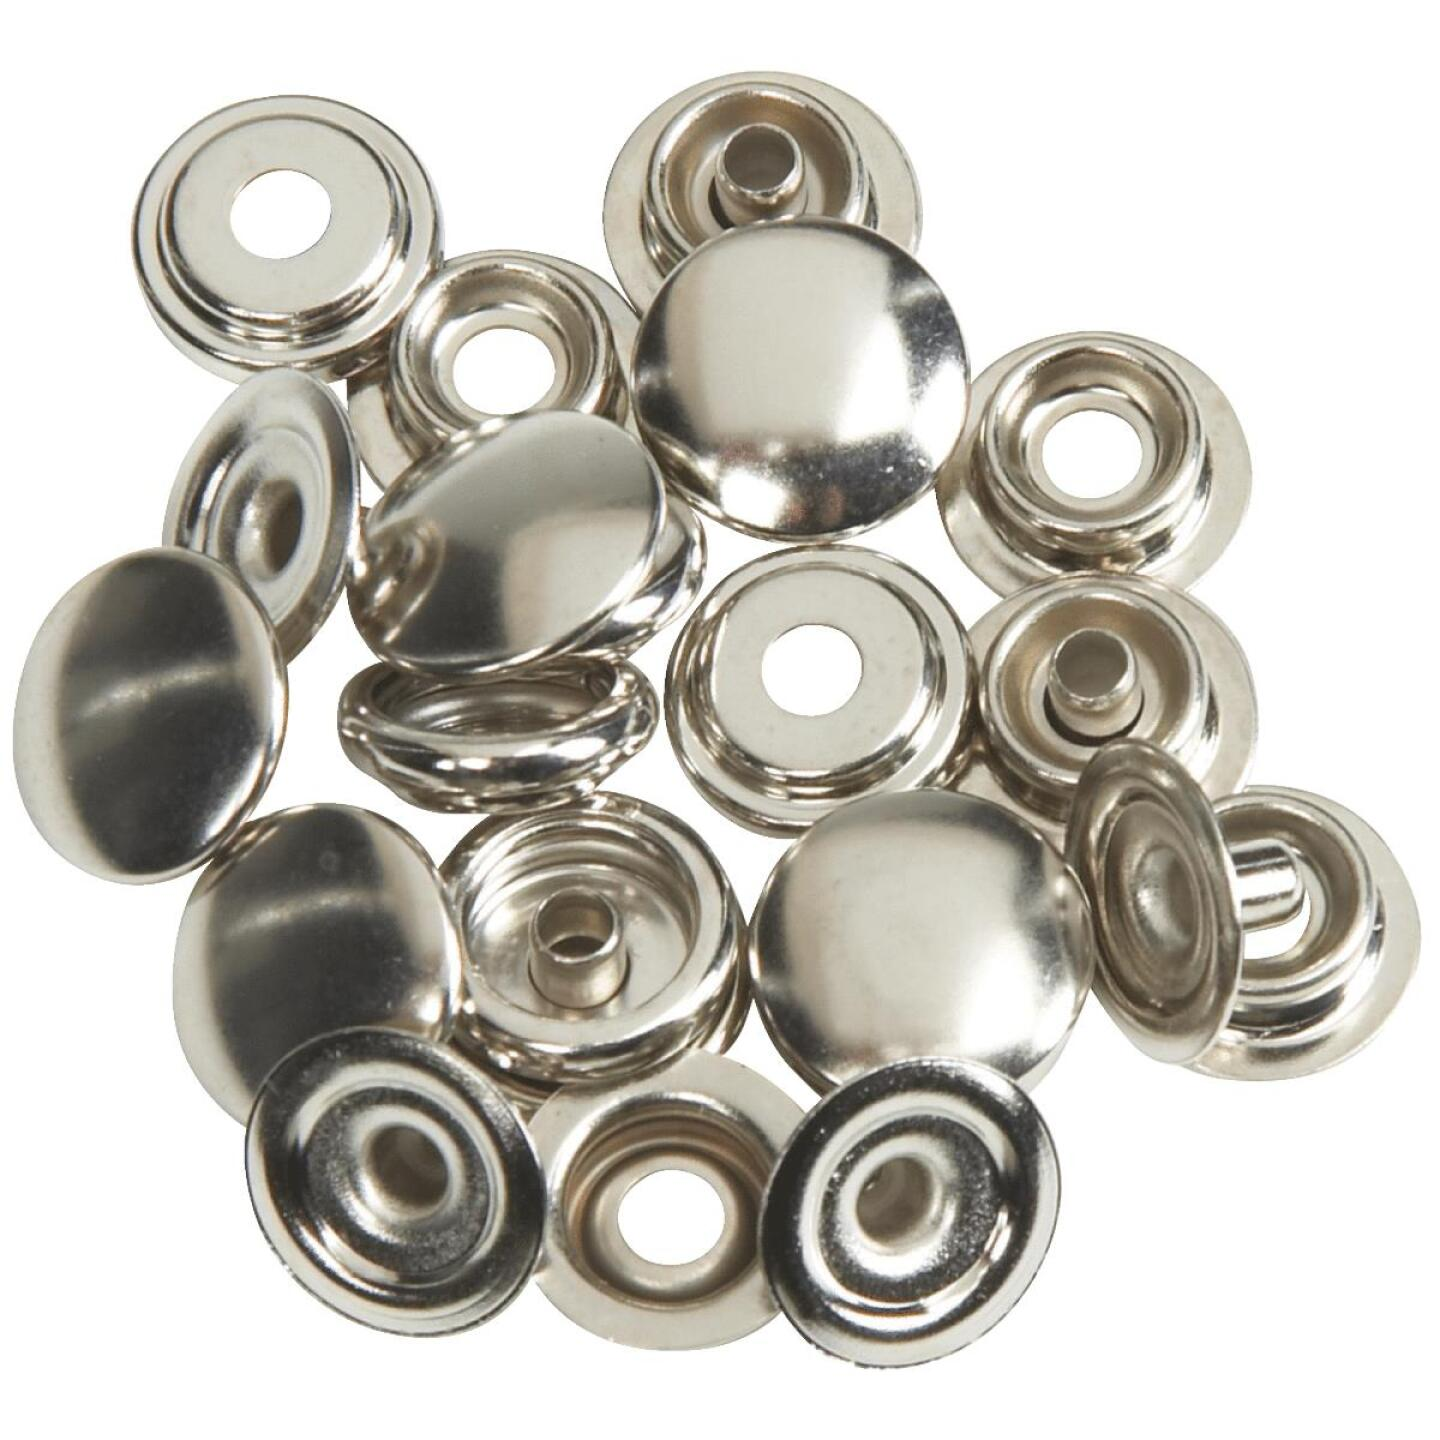 Lord & Hodge Metal Canvas to Canvas Snap Fastener Refill for Canvas (6 Ct.) Image 1